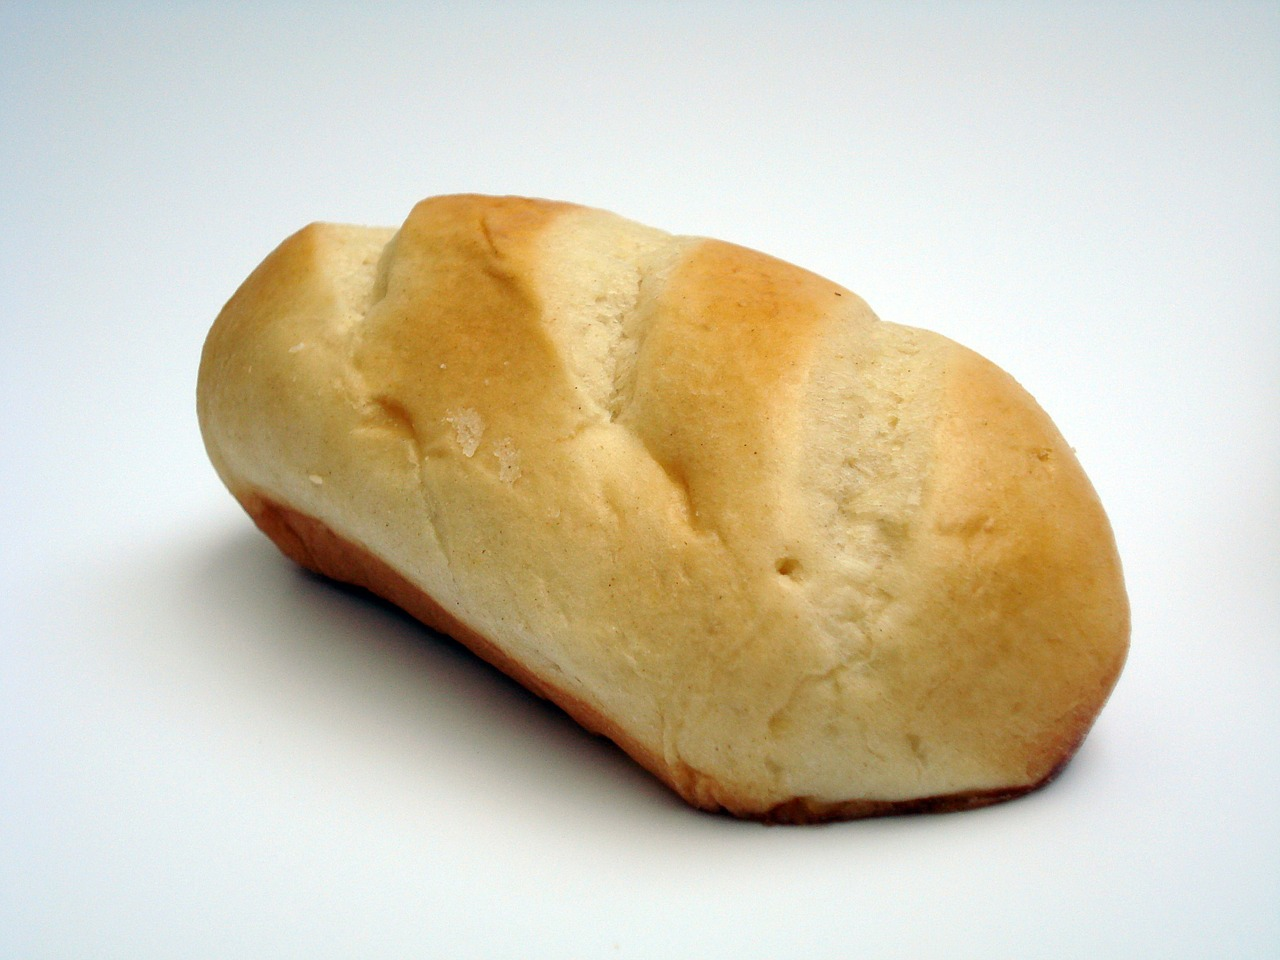 buns roll bread free photo